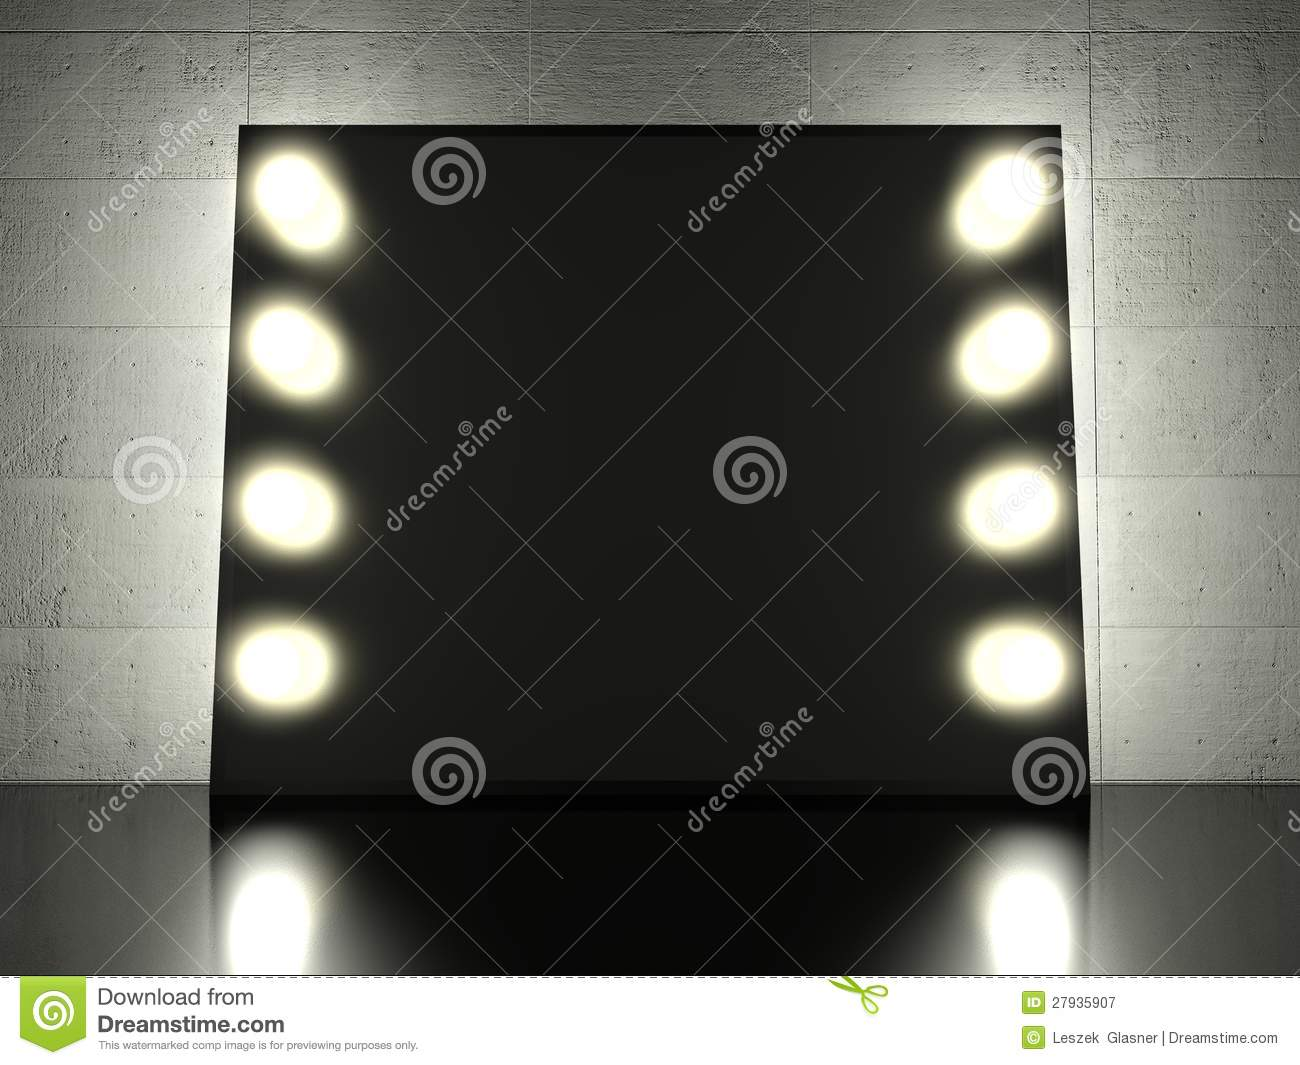 free stock photography makeup mirror with light bulbs background. Black Bedroom Furniture Sets. Home Design Ideas